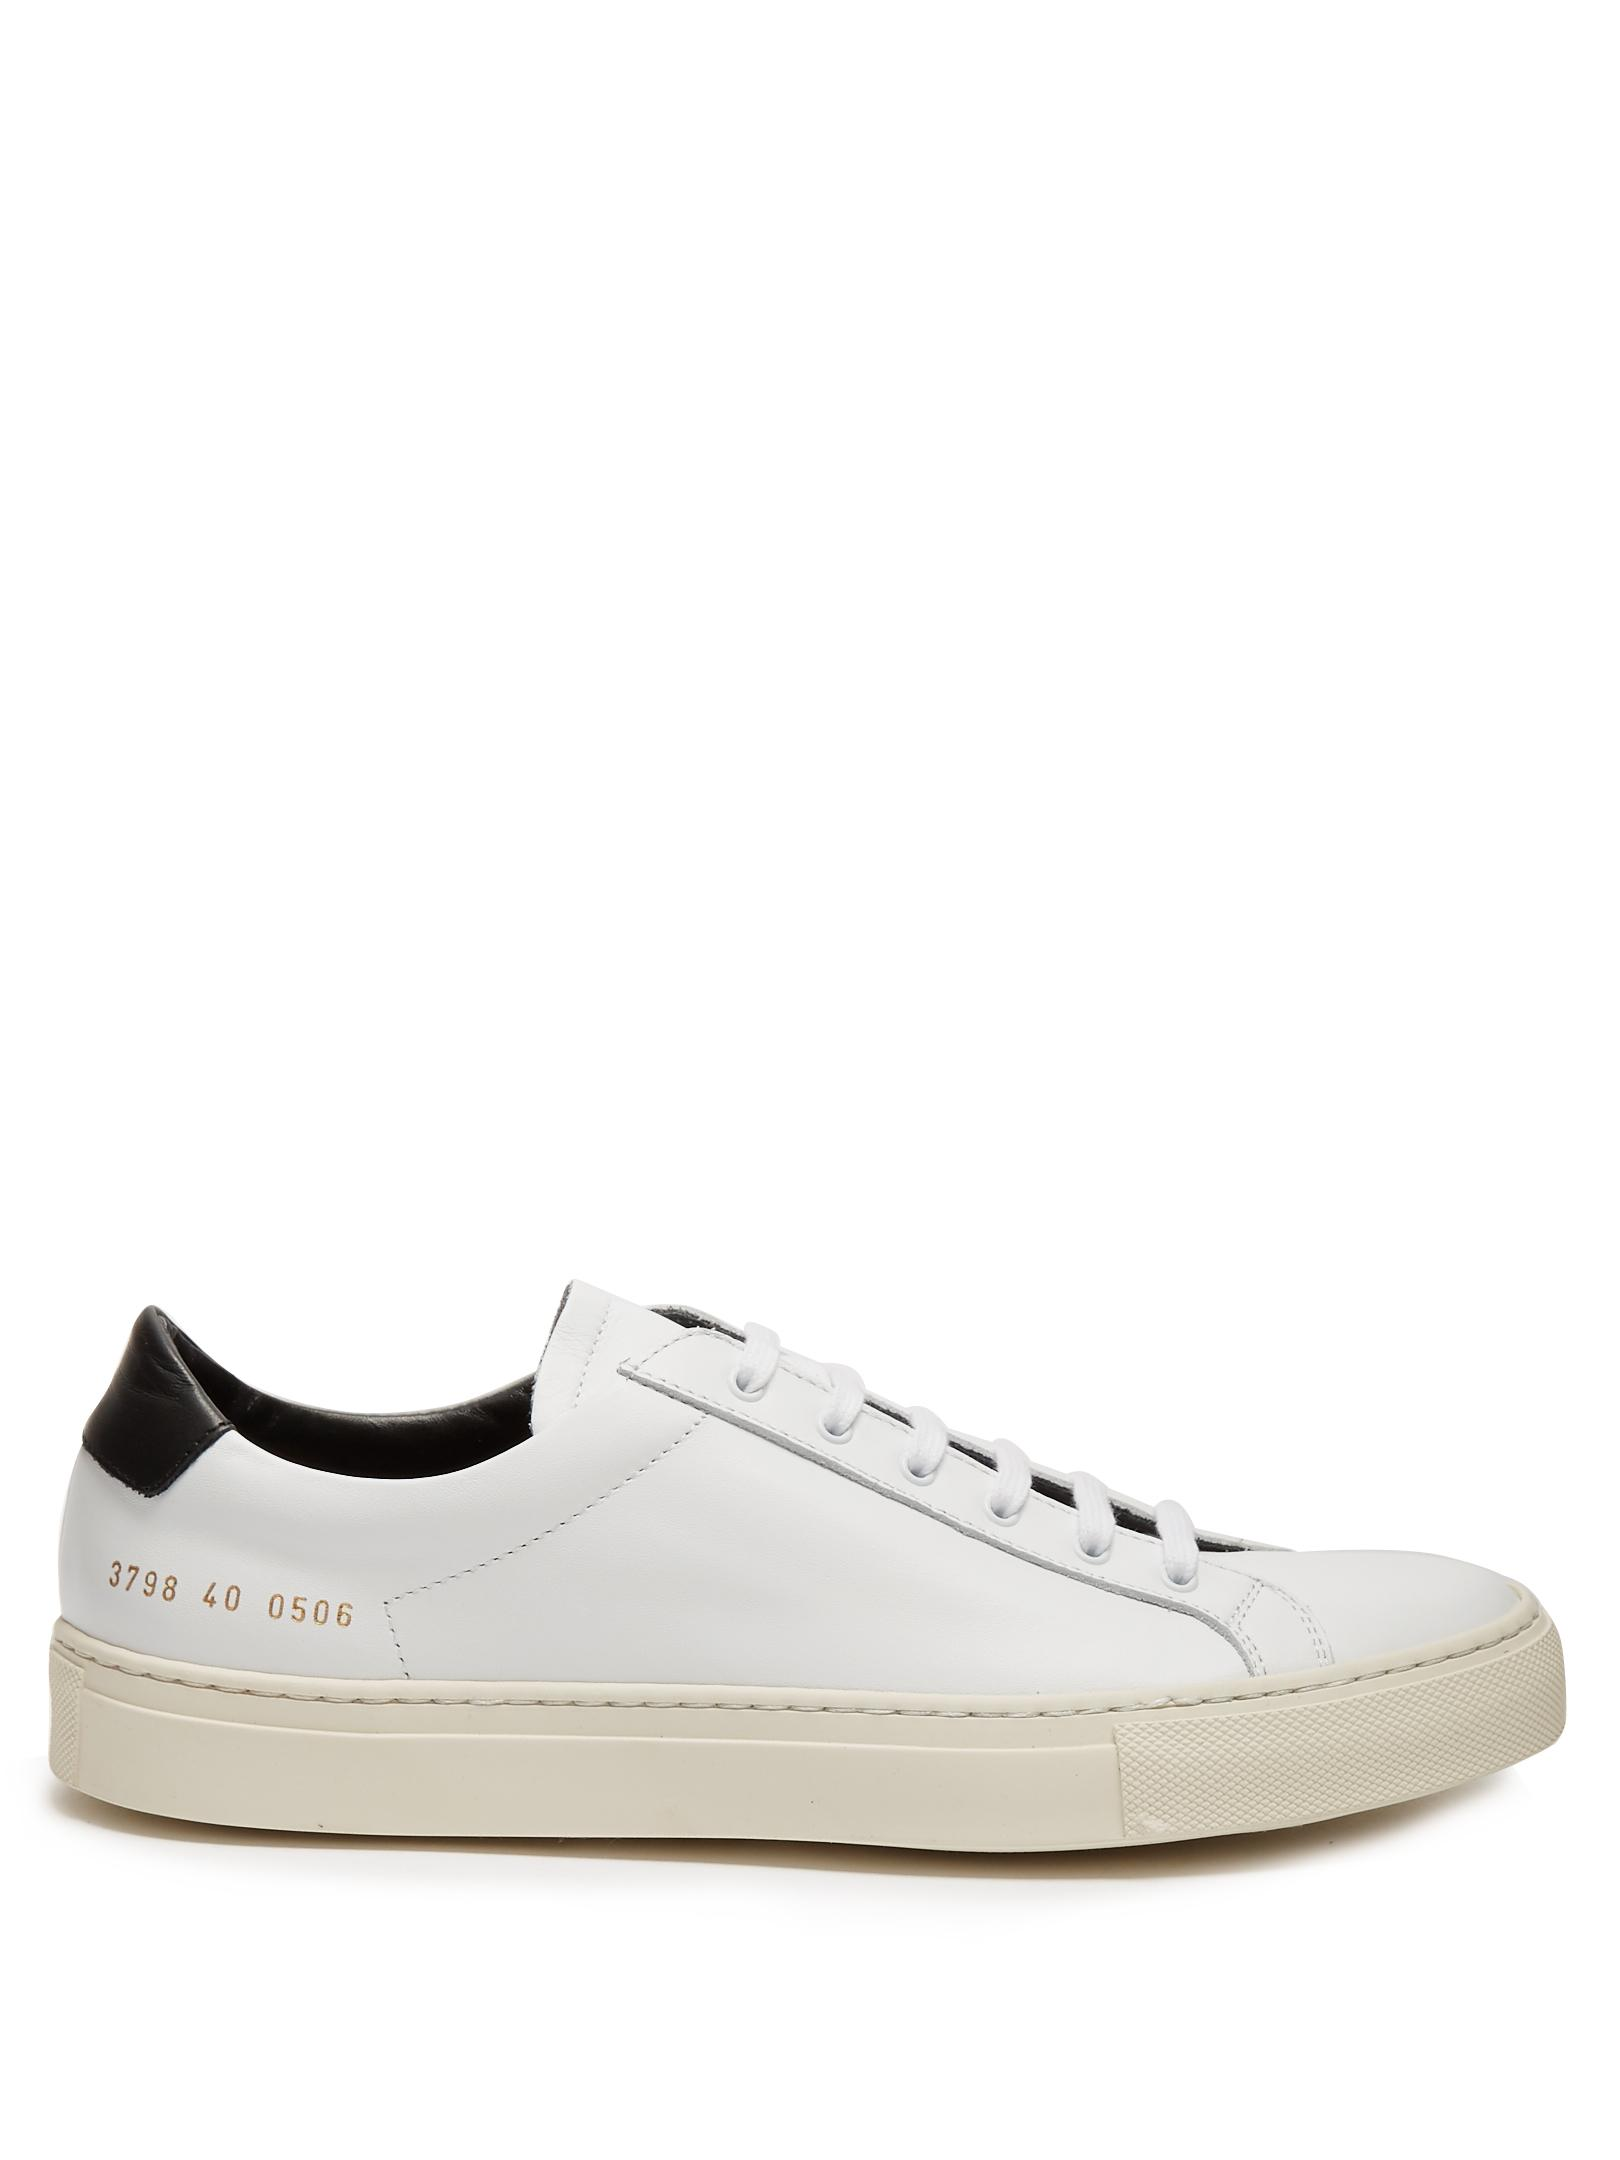 common projects achilles retro low top leather trainers in white lyst. Black Bedroom Furniture Sets. Home Design Ideas